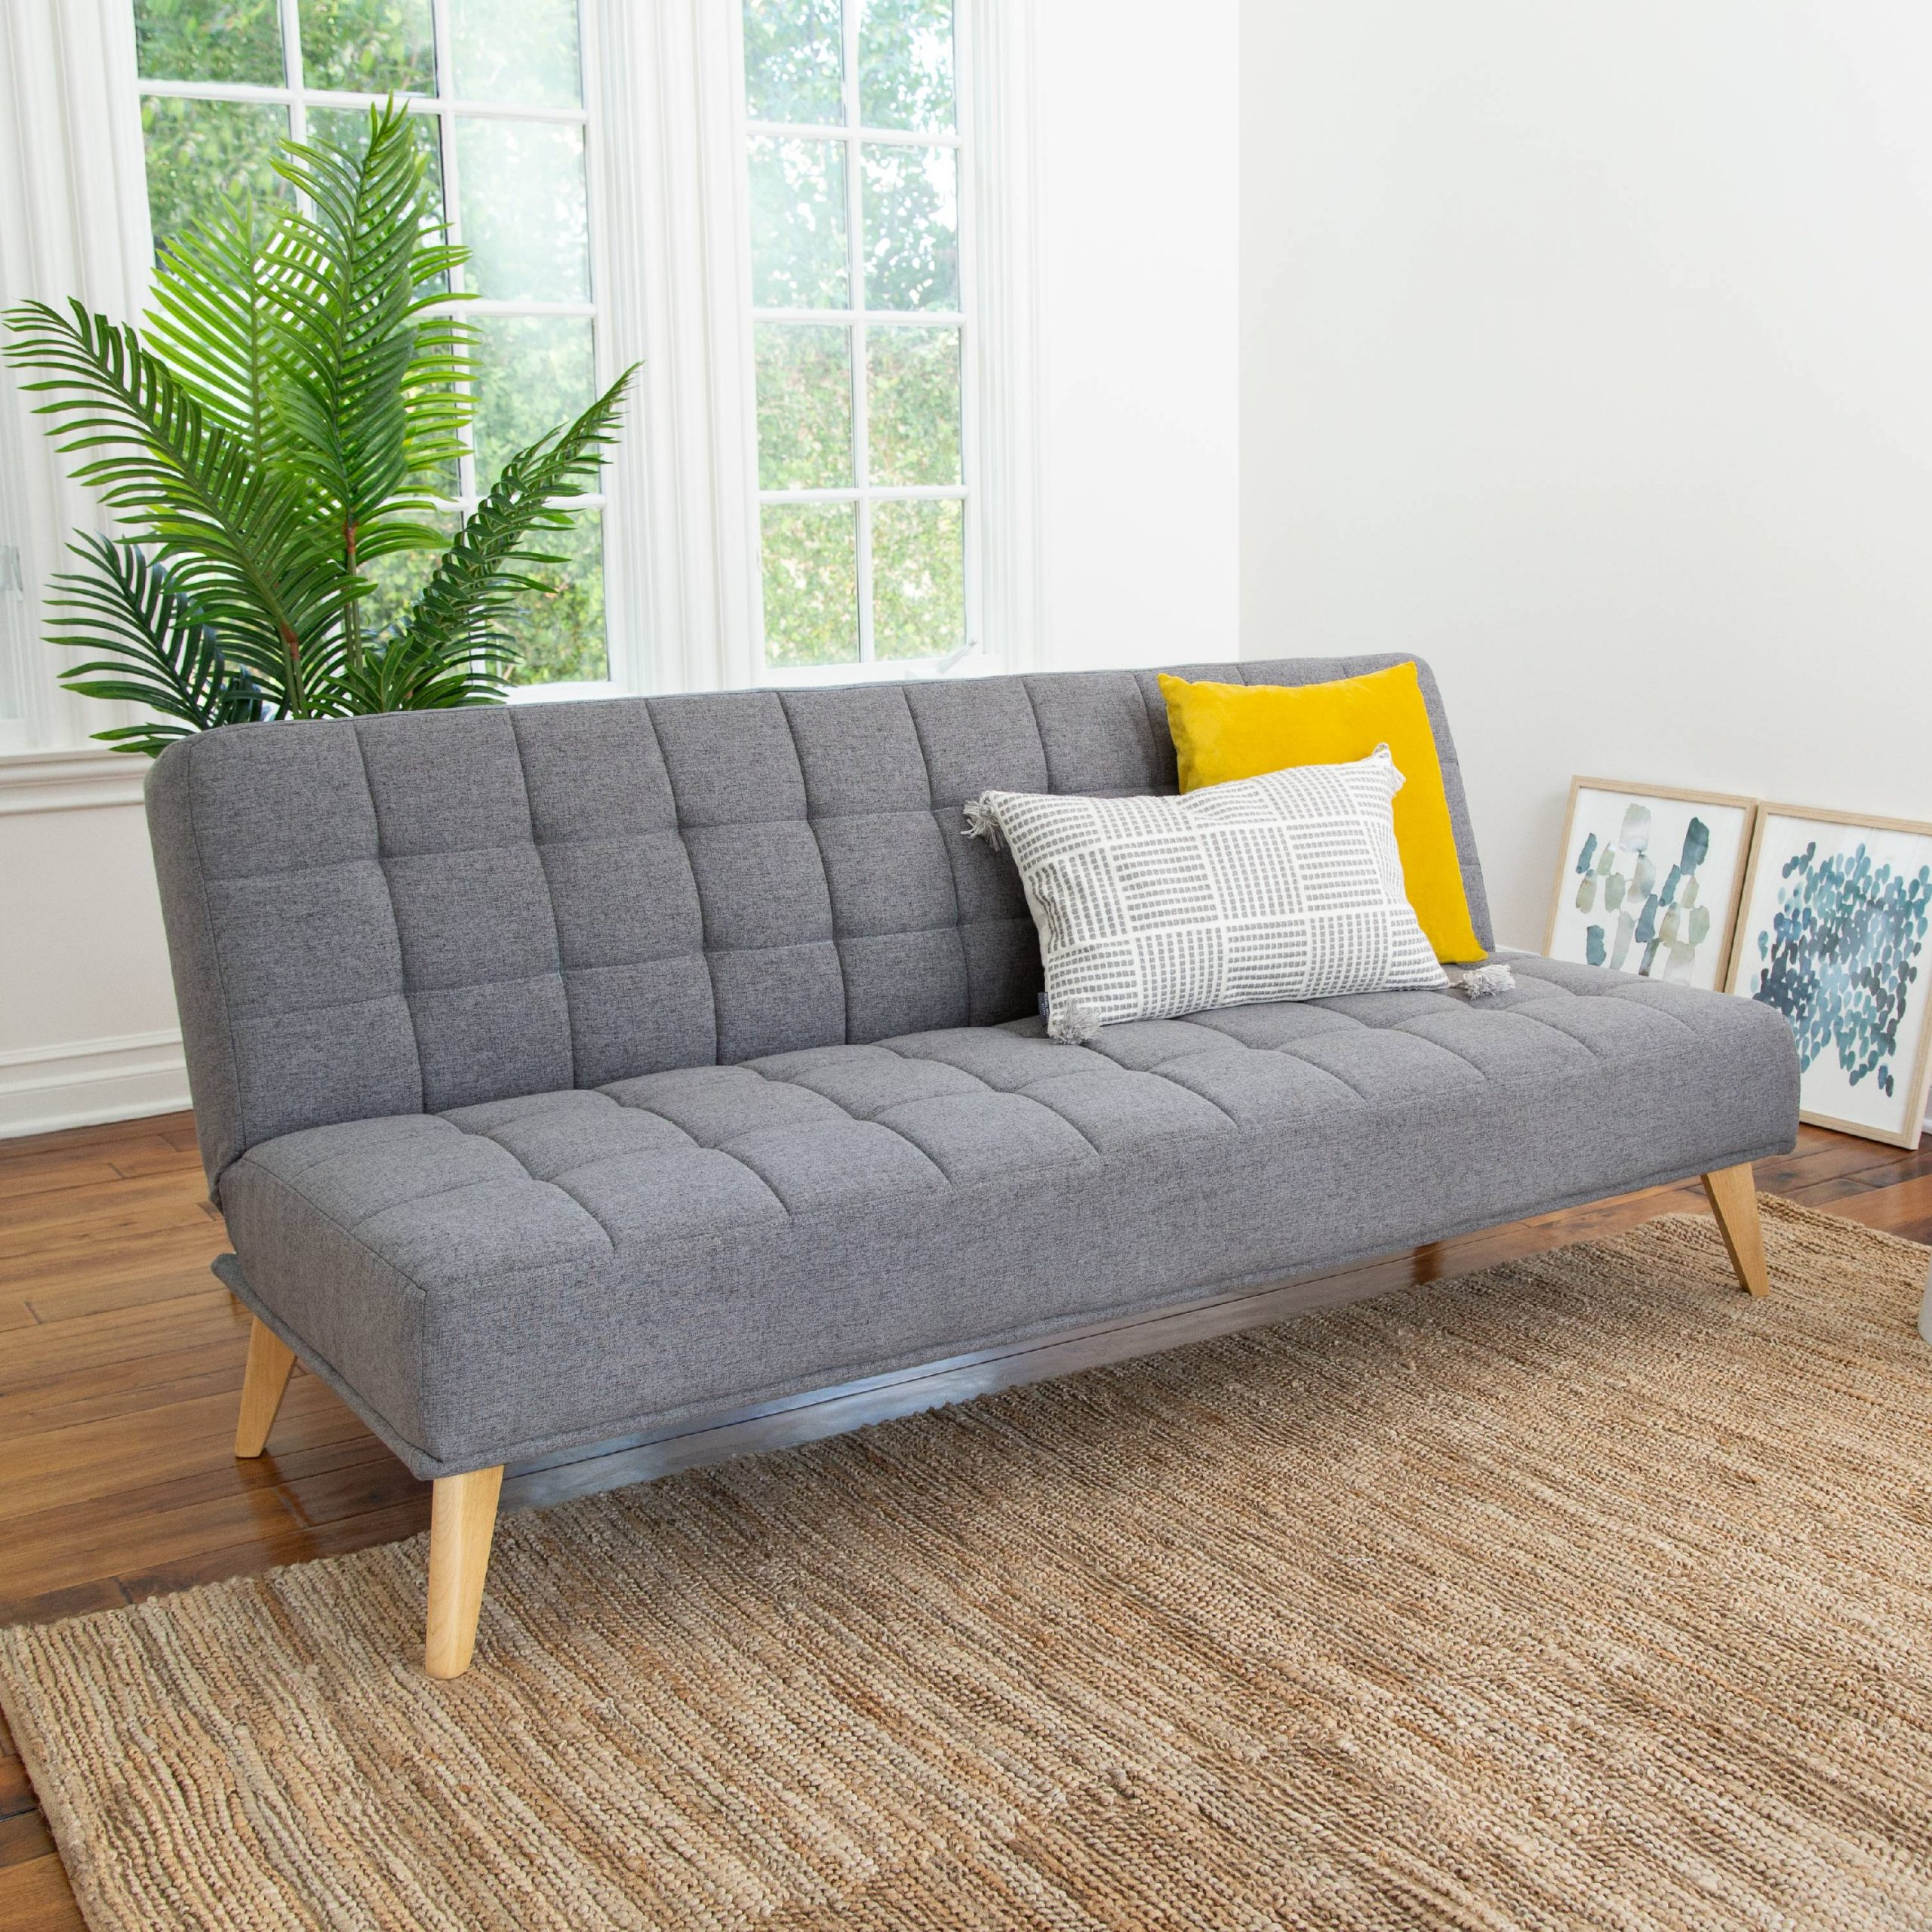 Devon & Claire Miles Tufted Fabric Convertible Sofa Futon For Convertible Sectional Sofas (View 2 of 15)